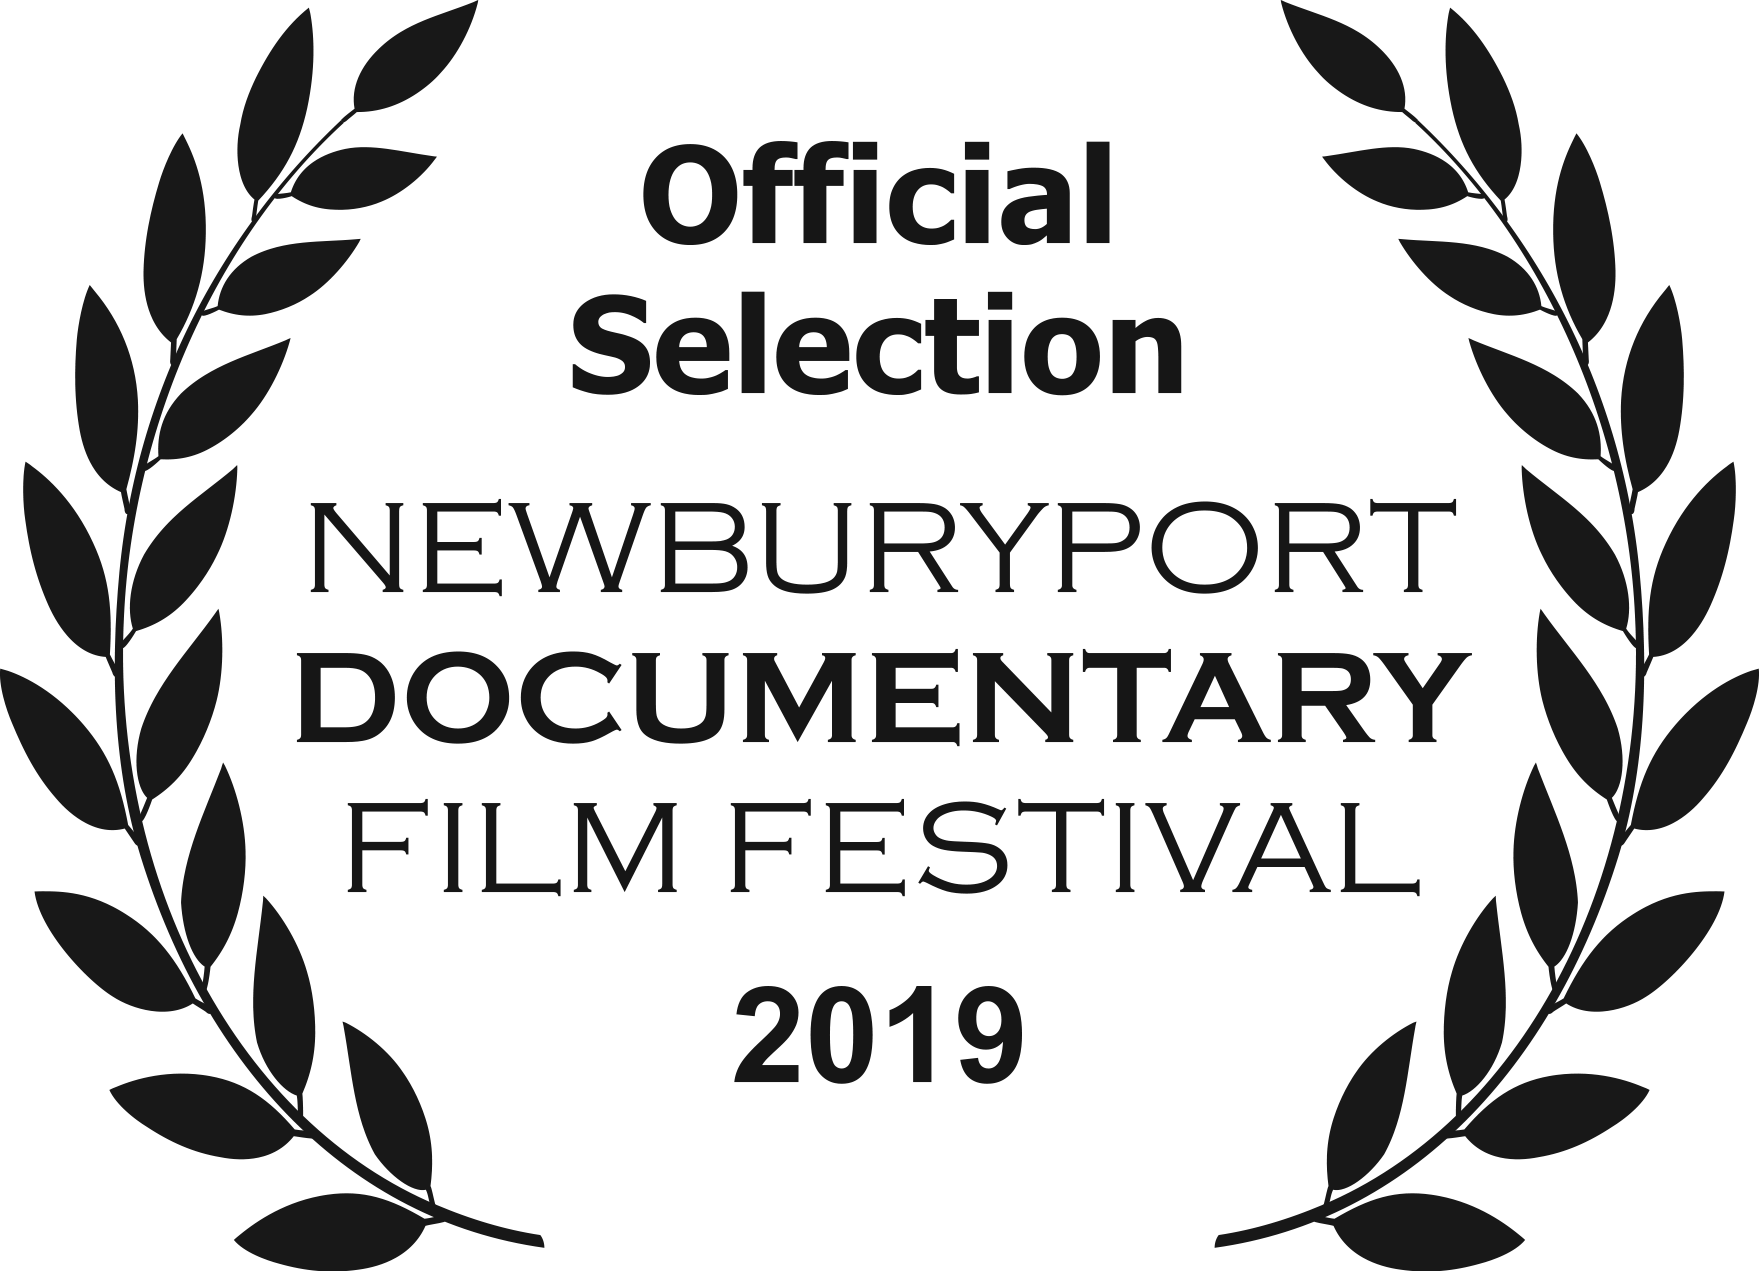 NewburyportDocFF_2019_OfficialSelection.png